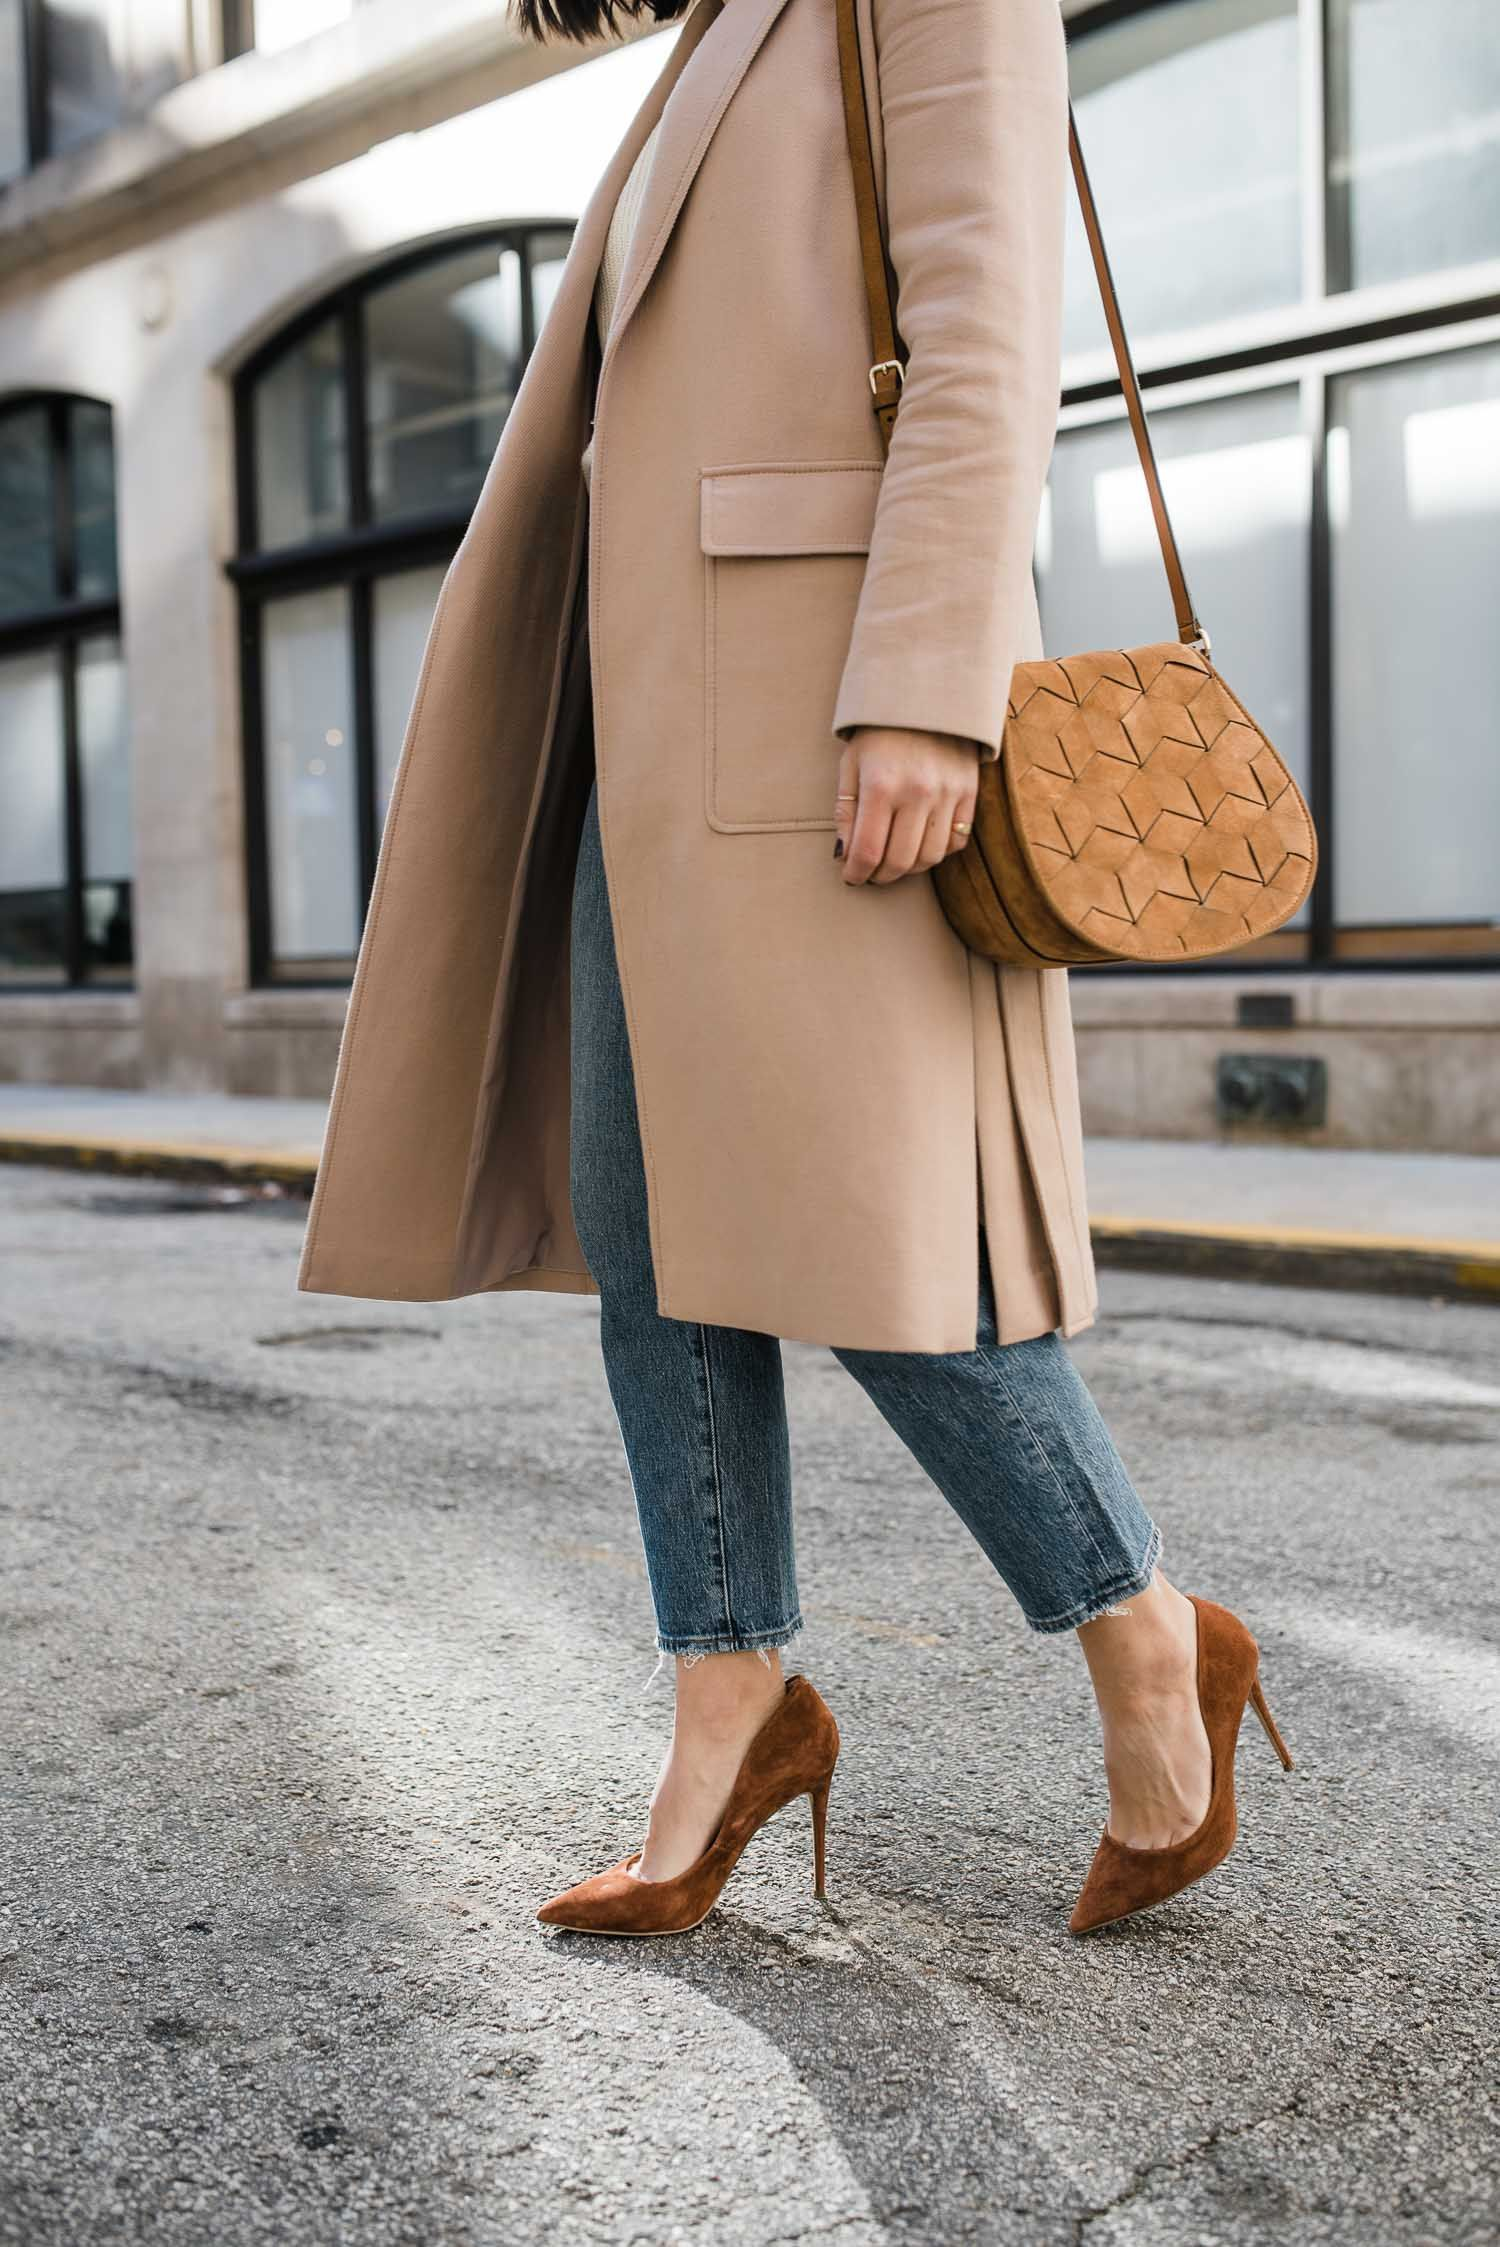 The Best Neutrals For Winter An Indigo Day Affordable Style Blog Pumps Outfit Coat Outfits For Women Winter Outfits Dressy [ 2247 x 1500 Pixel ]